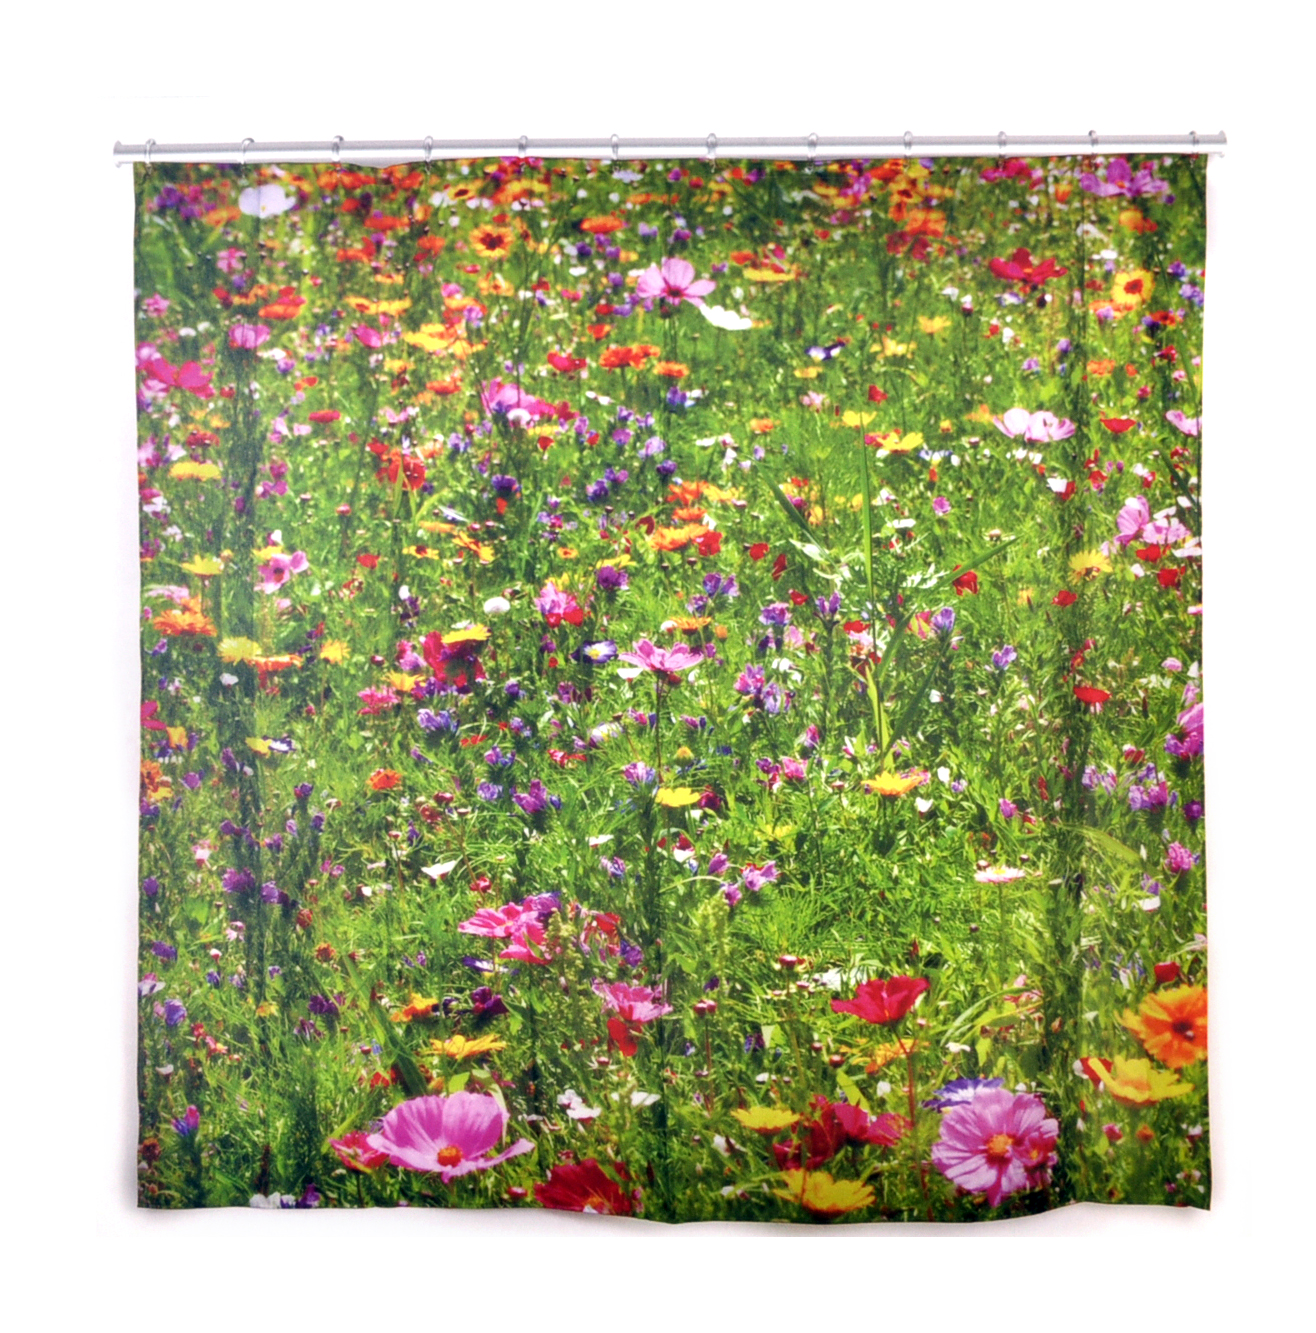 Flower Shower Curtain 180 x 200 cm / 70 x 79 inches | Pink Cat Shop